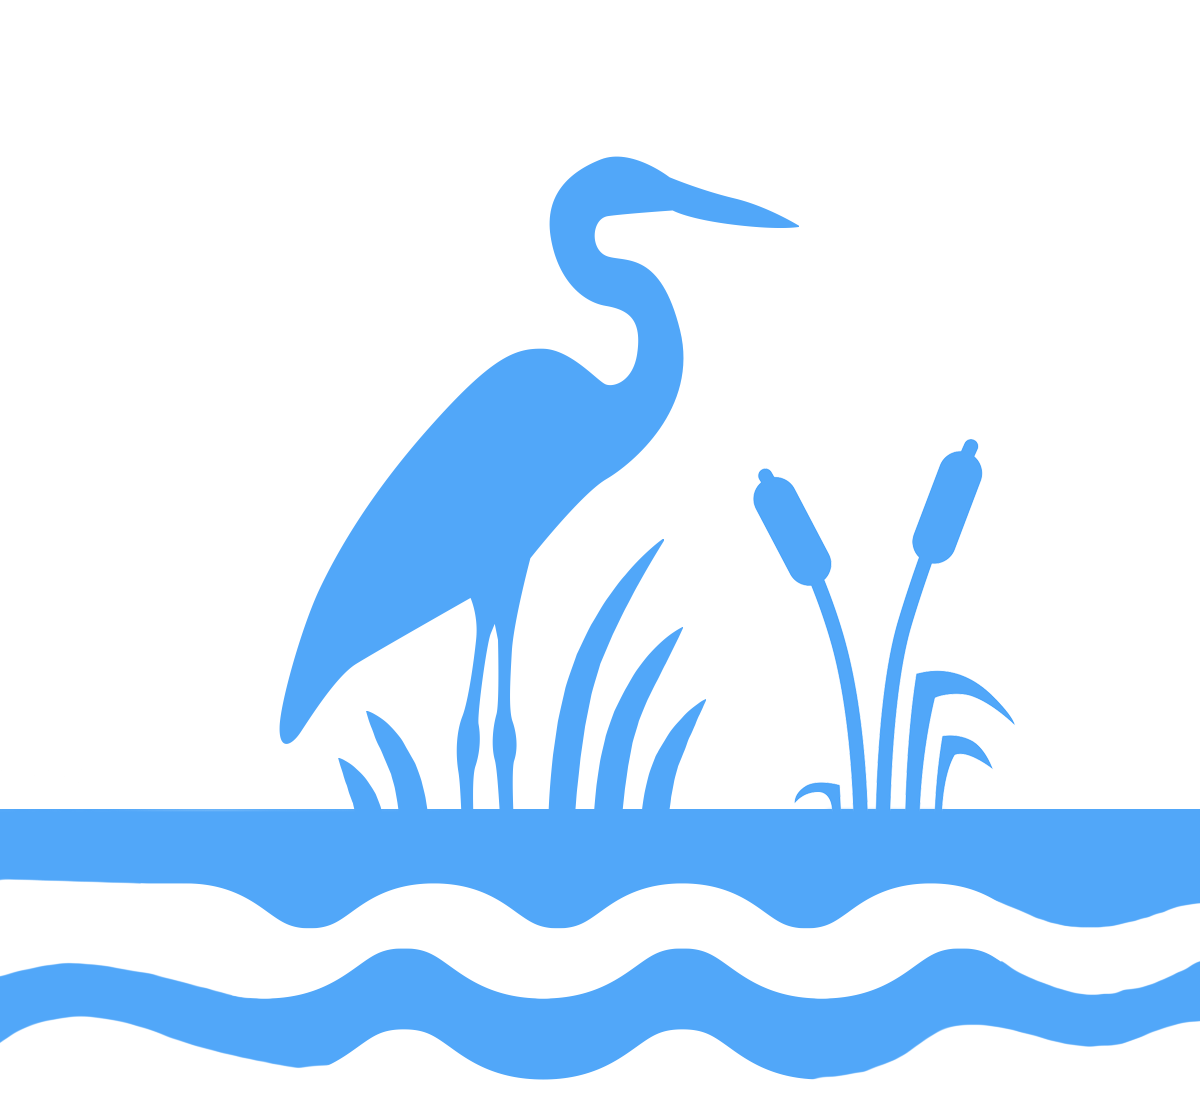 Ecosystems icon - A heron standing in water